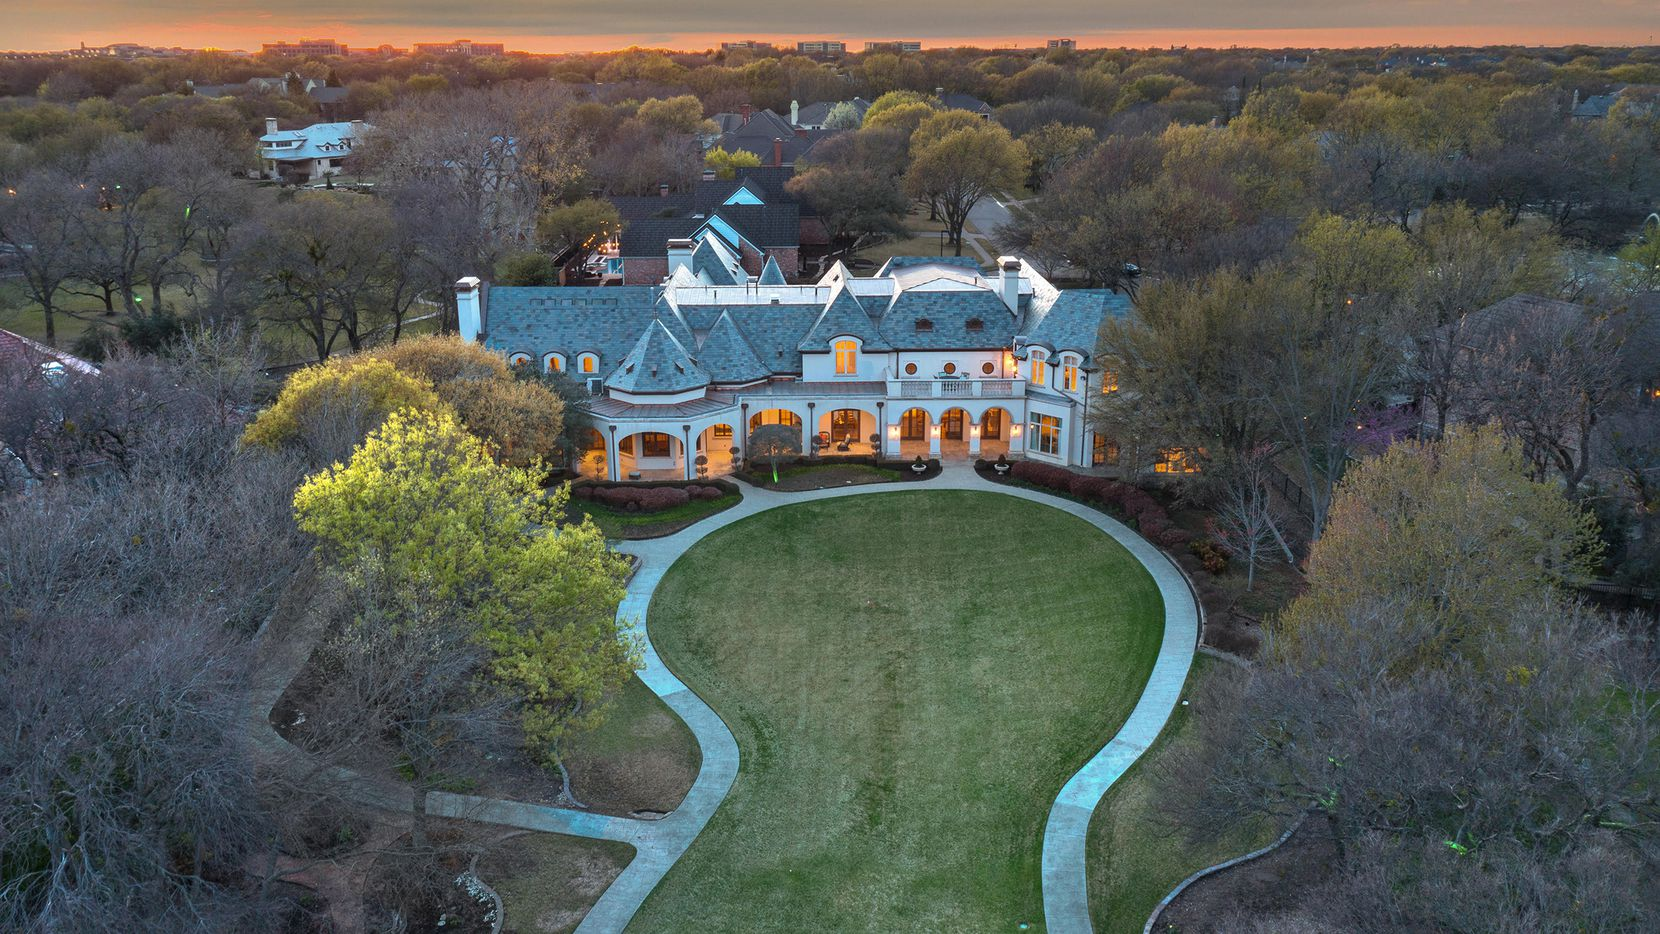 The 2.4-acre estate at 5504 Cavendish Court in Plano is listed at $4.7 million.